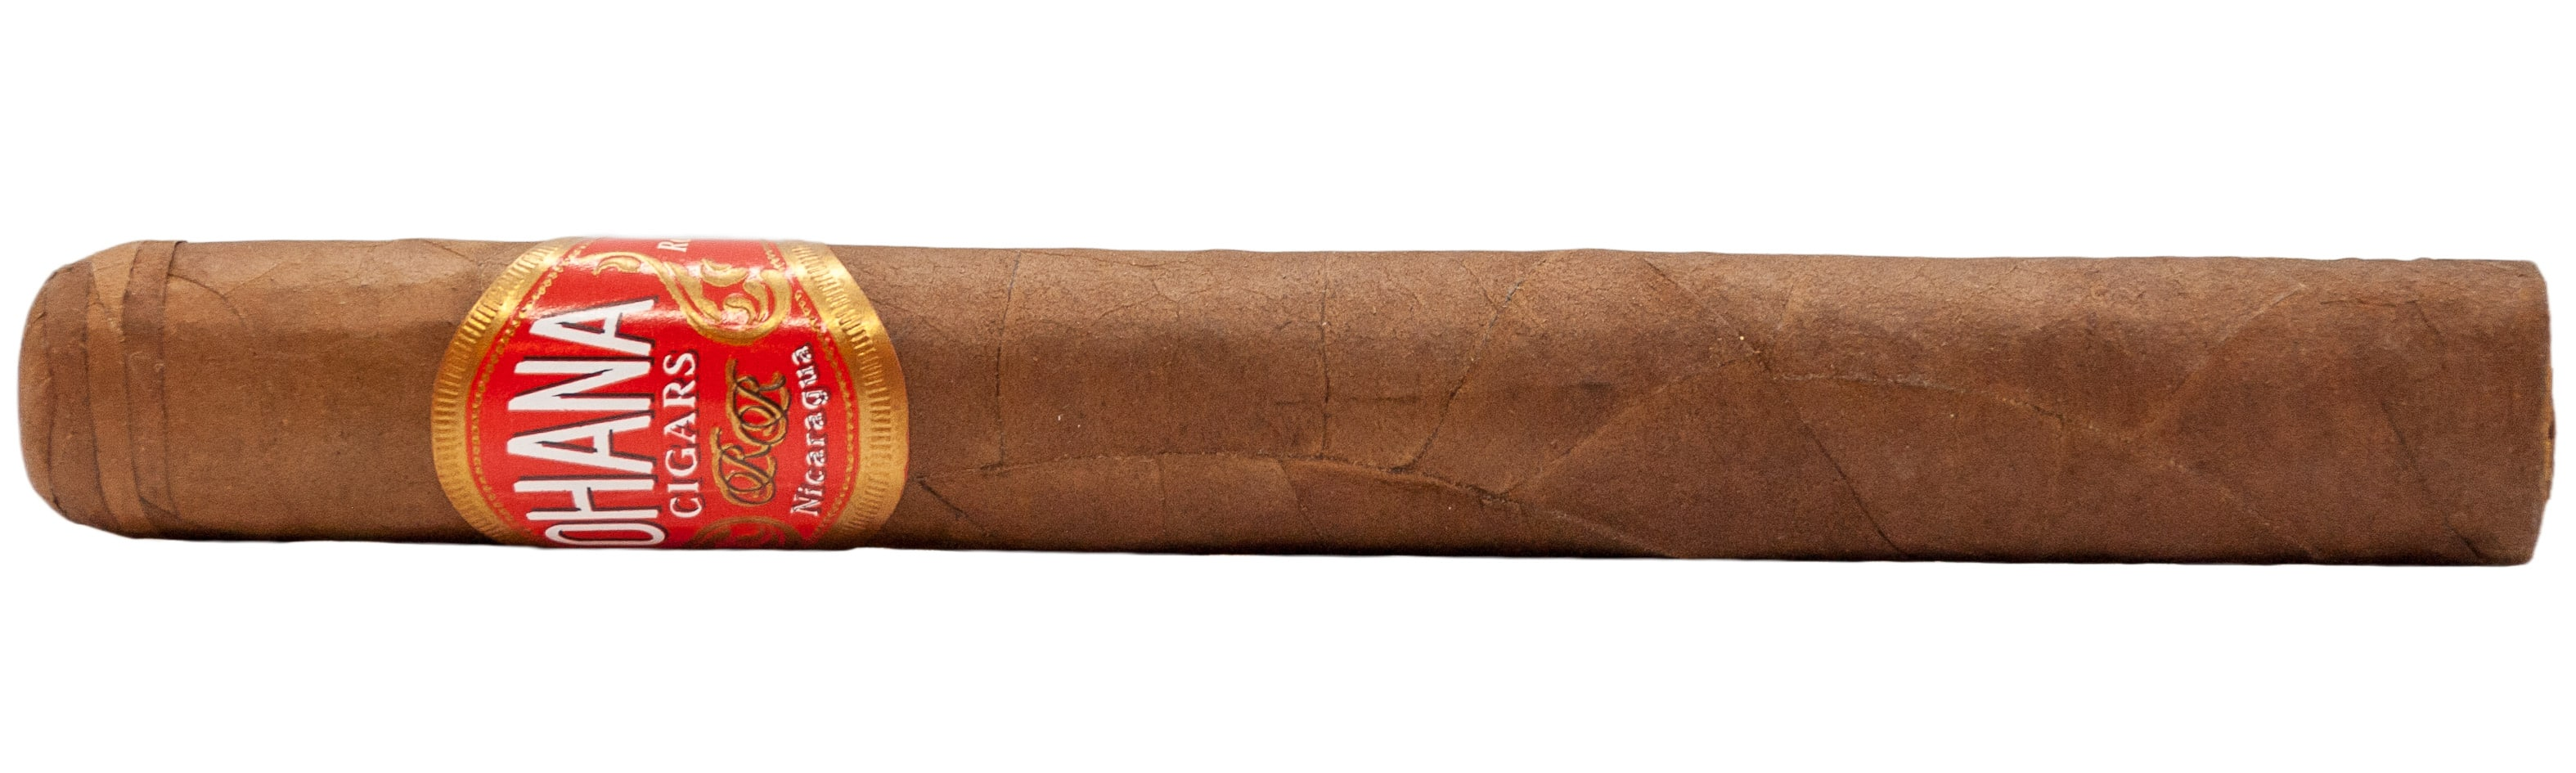 Blind Cigar Review: Ohana | Friends & Family Corona Gorda